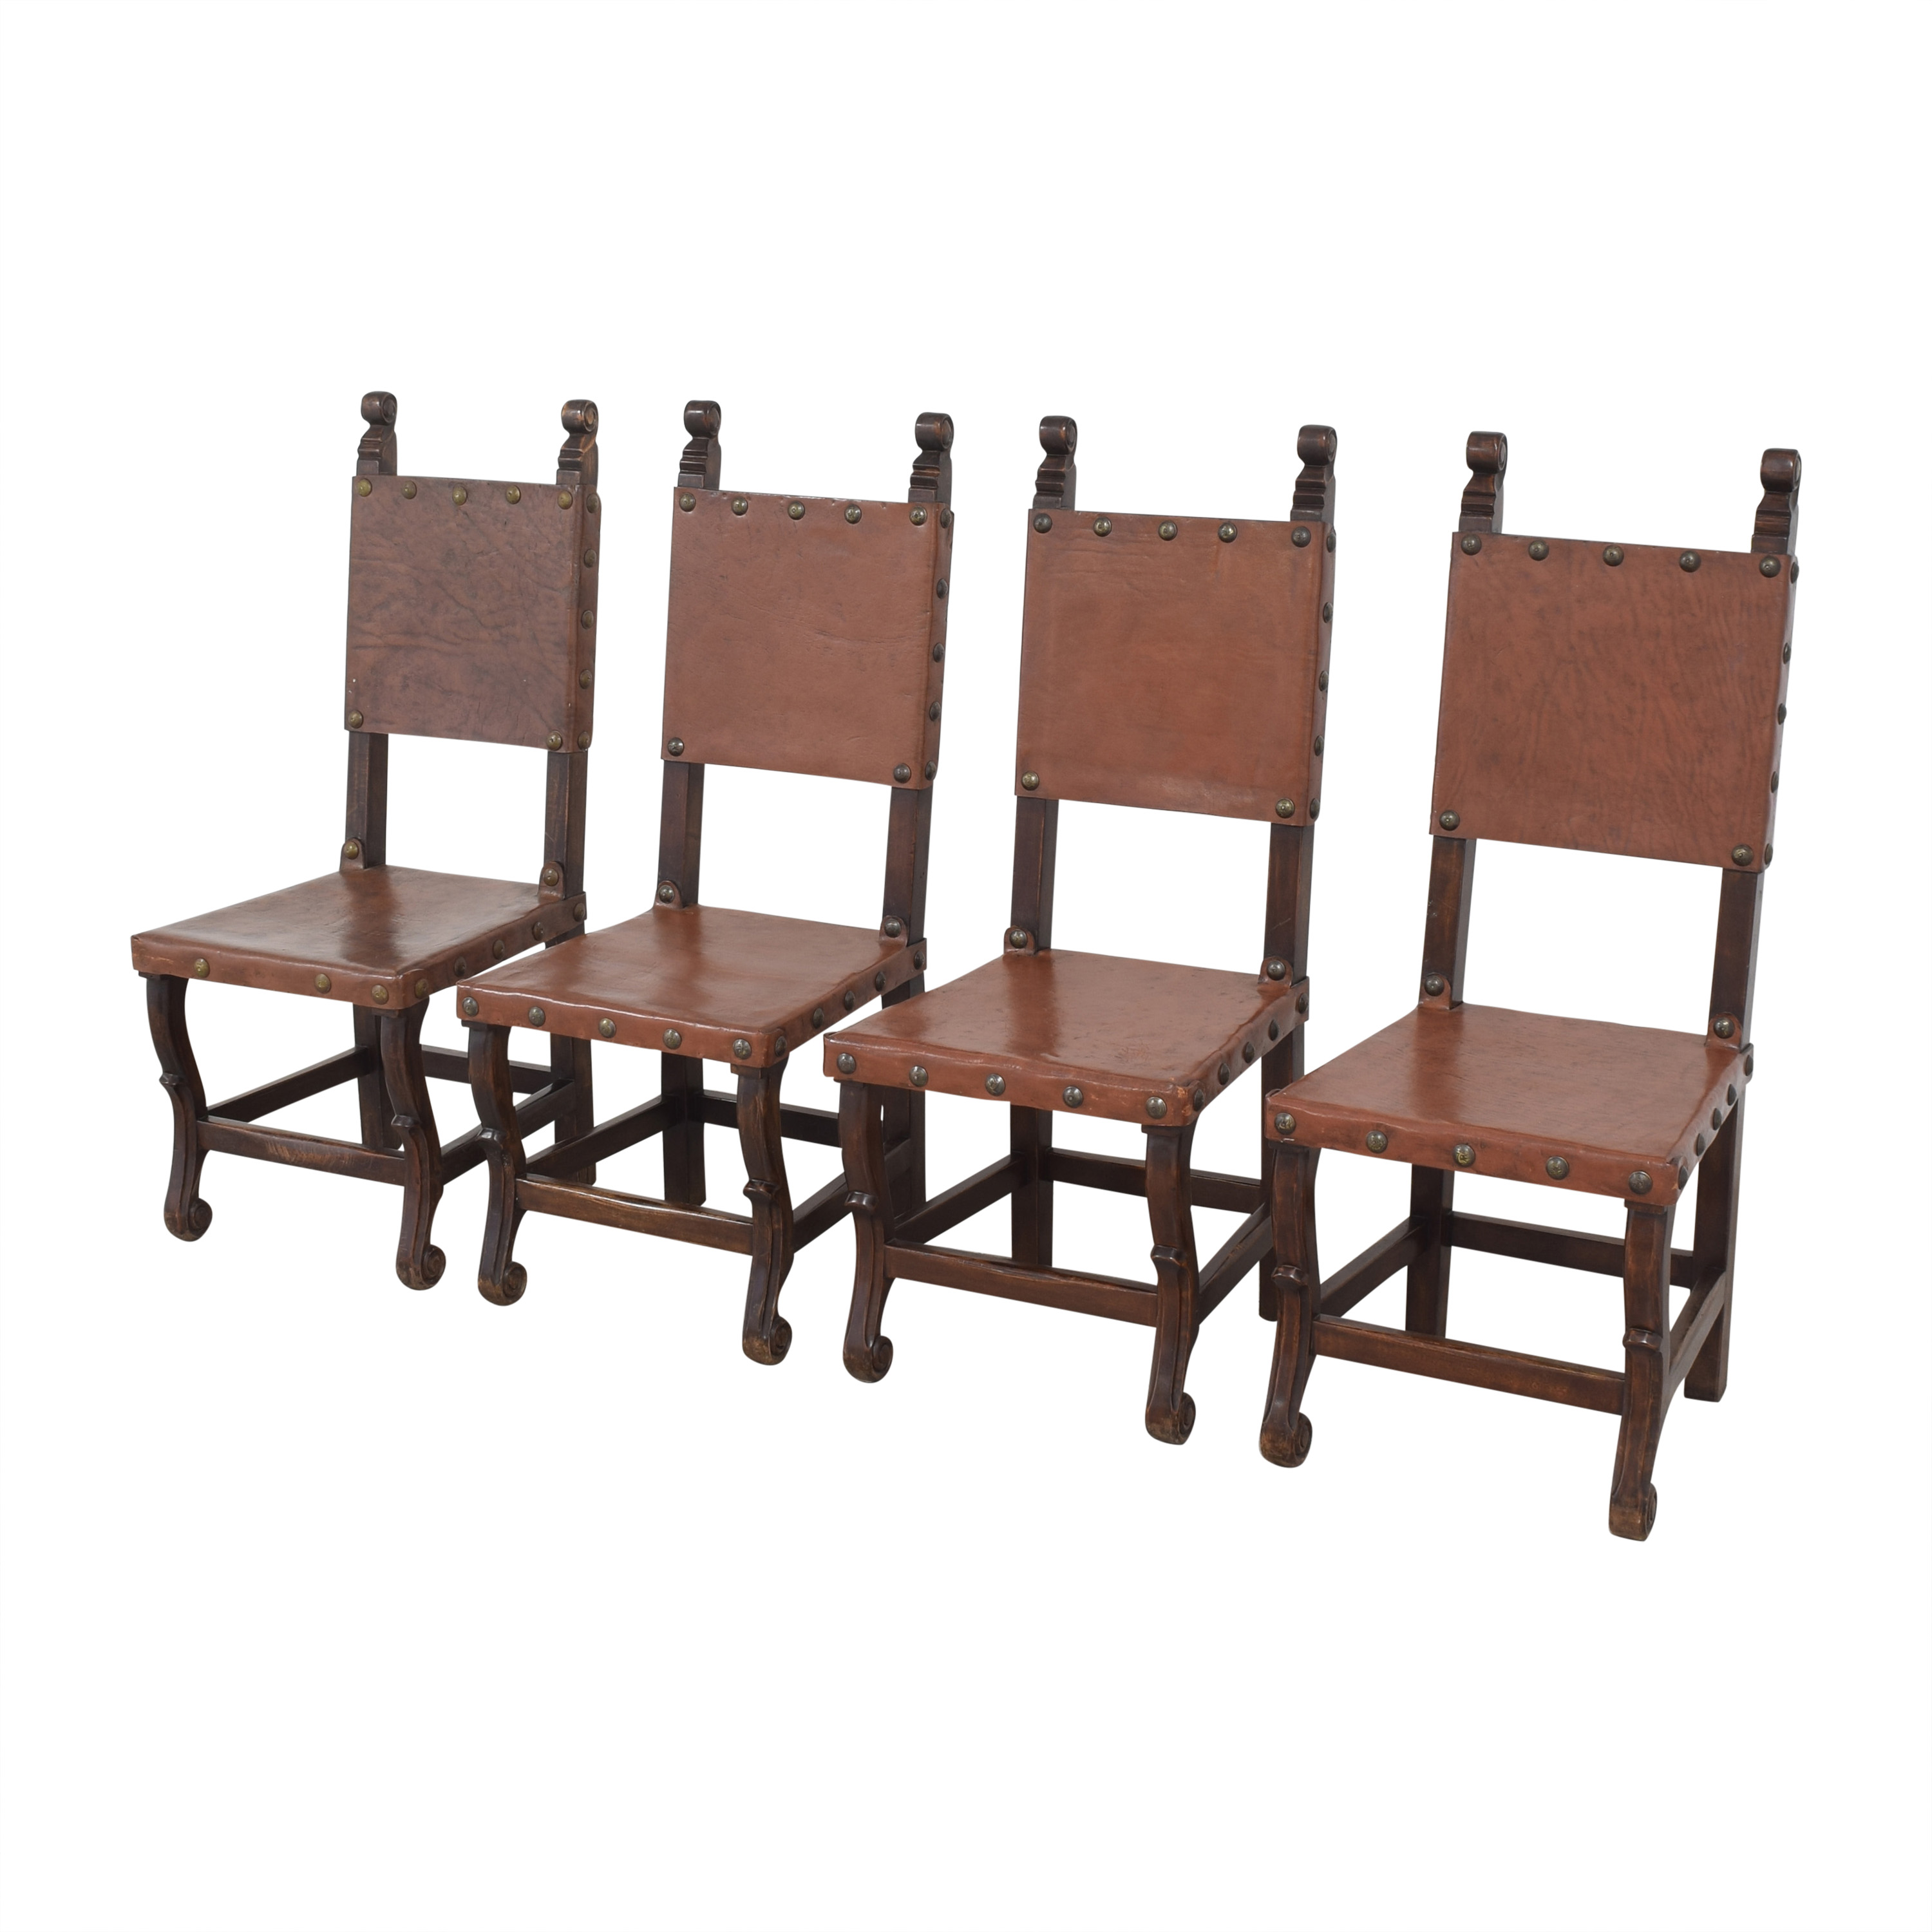 buy South Cone Furniture South Cone Nailhead Accented Dining Chairs online